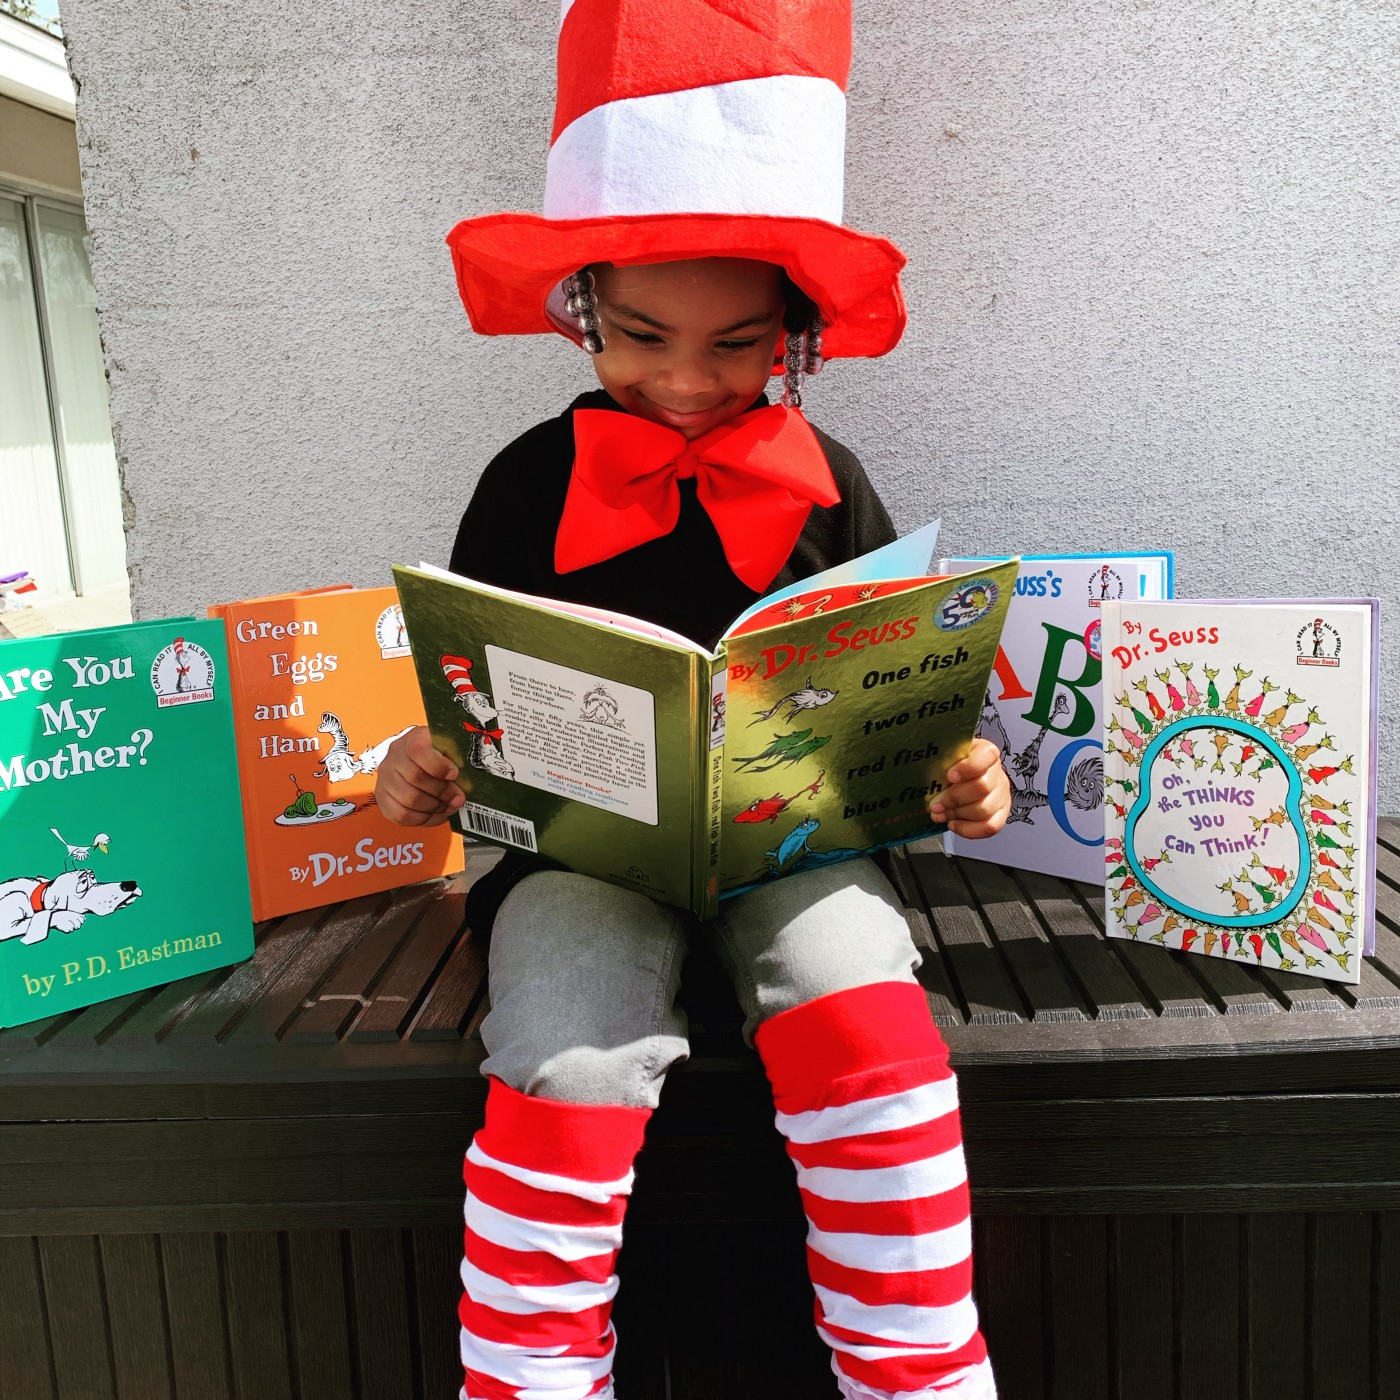 Child reading Dr. Suess books with several Seuss books standing up around her.